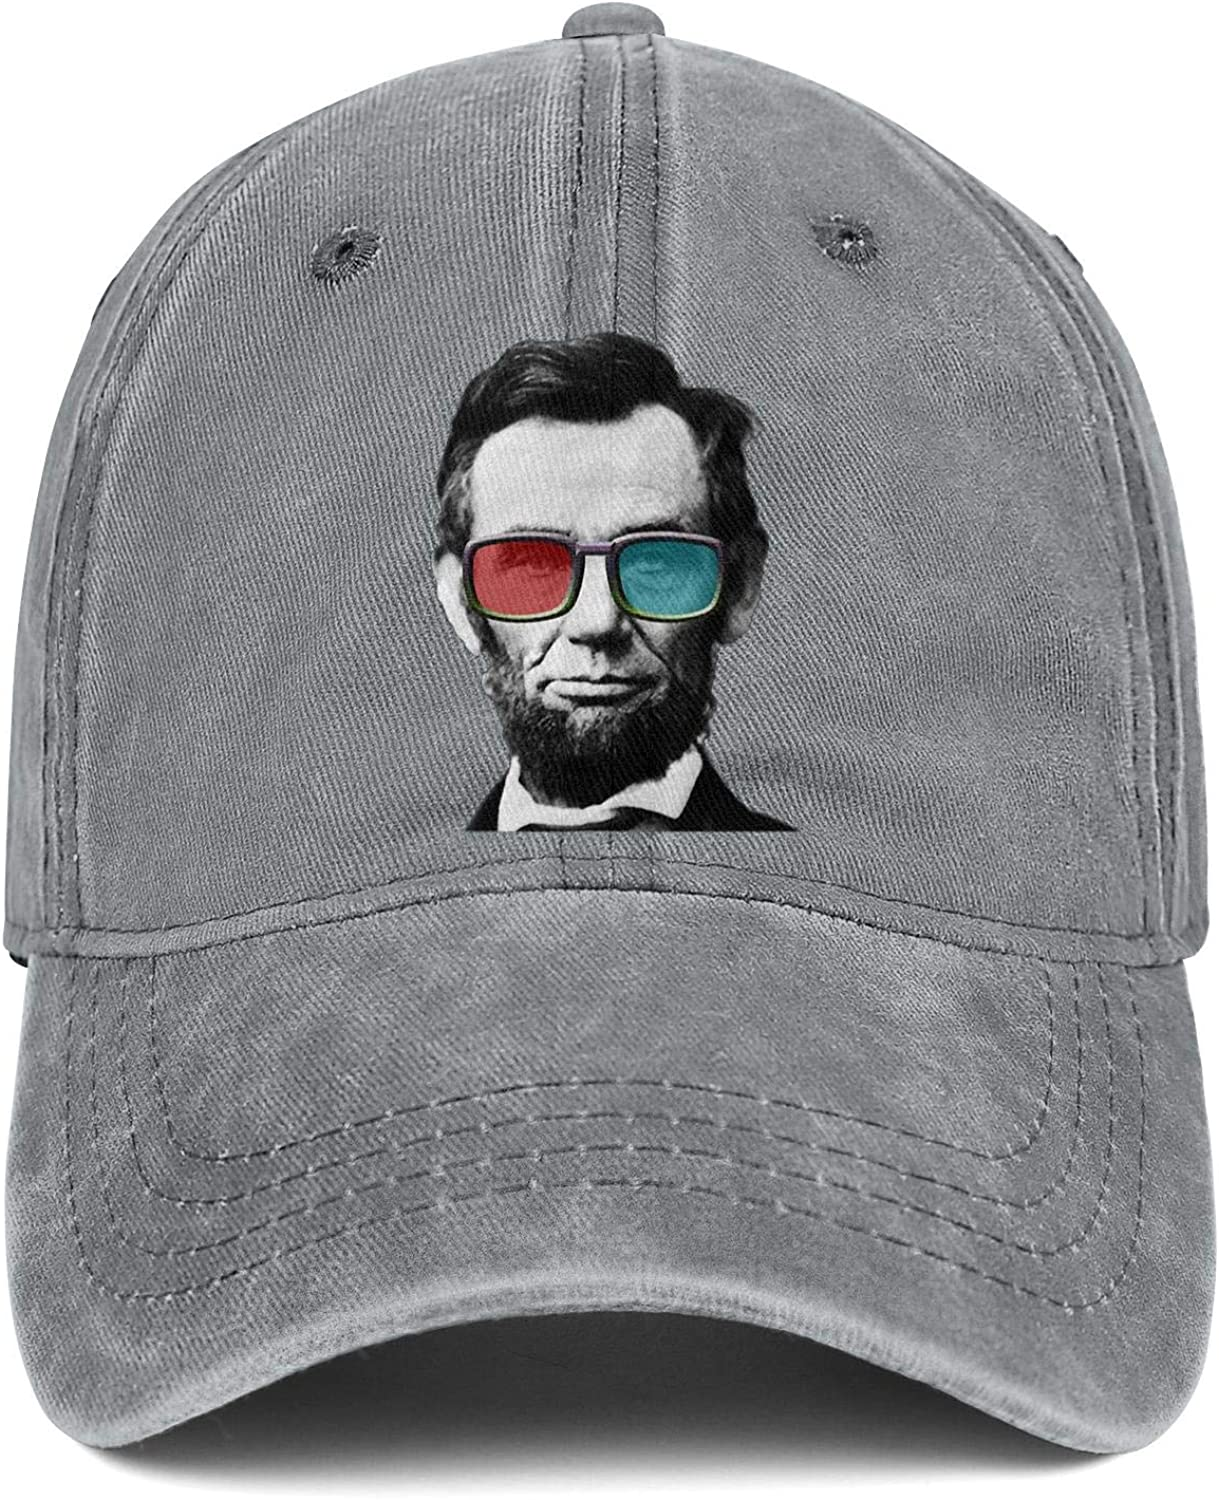 Abraham Lincoln Posters Glasses Unisex Baseball Cap Two-Tone Stretch Sport Baseball Hats Adjustable Trucker Caps Dad-Hat